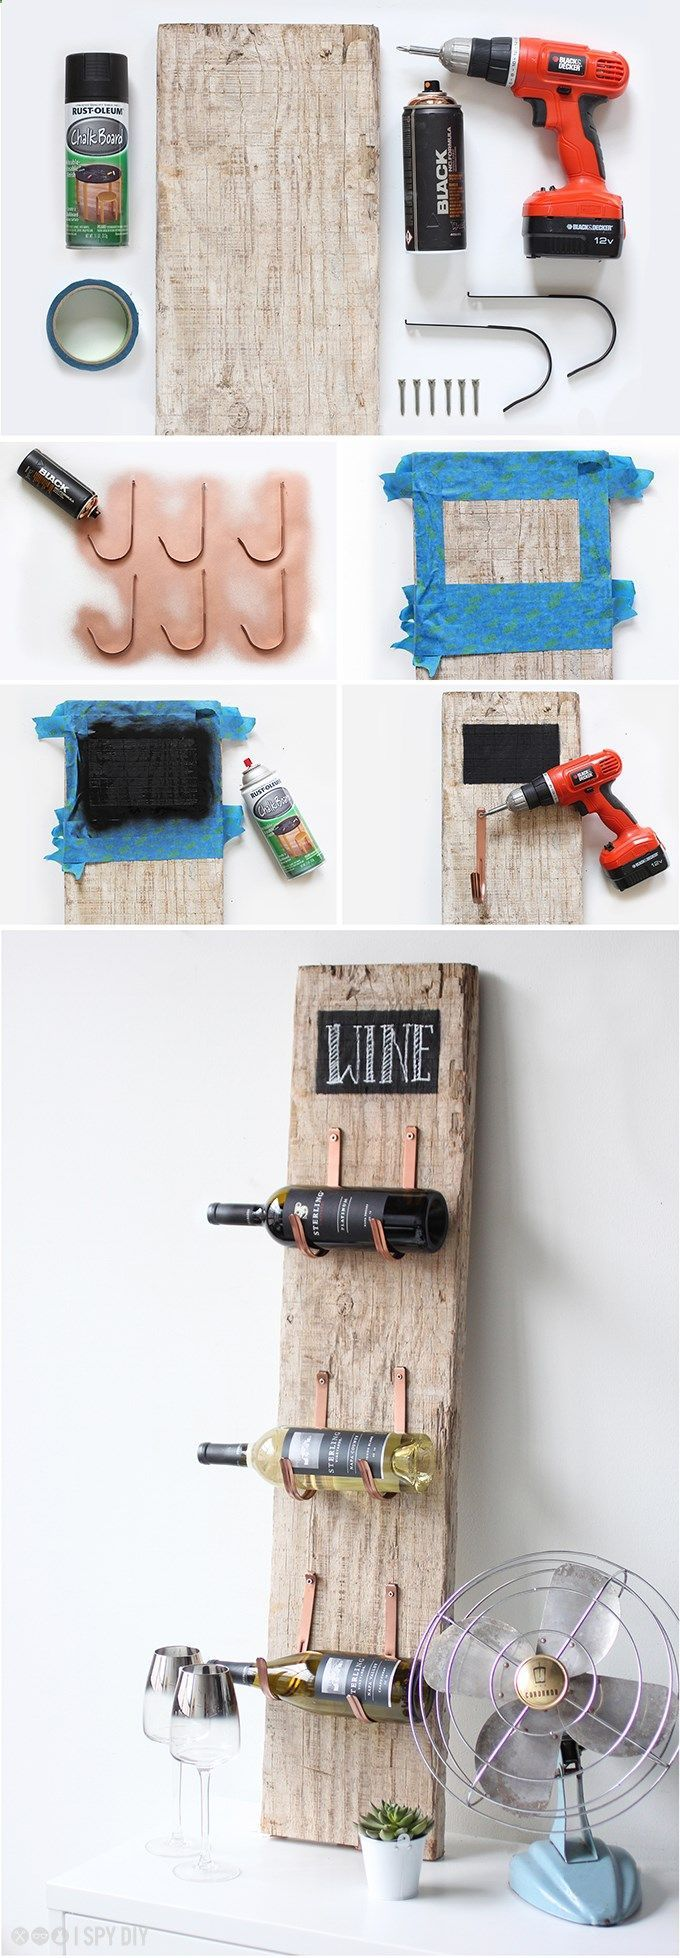 Wine Gifts - This DIY Barn Wood Wine Rack makes a fantastic gift for those who love wine!